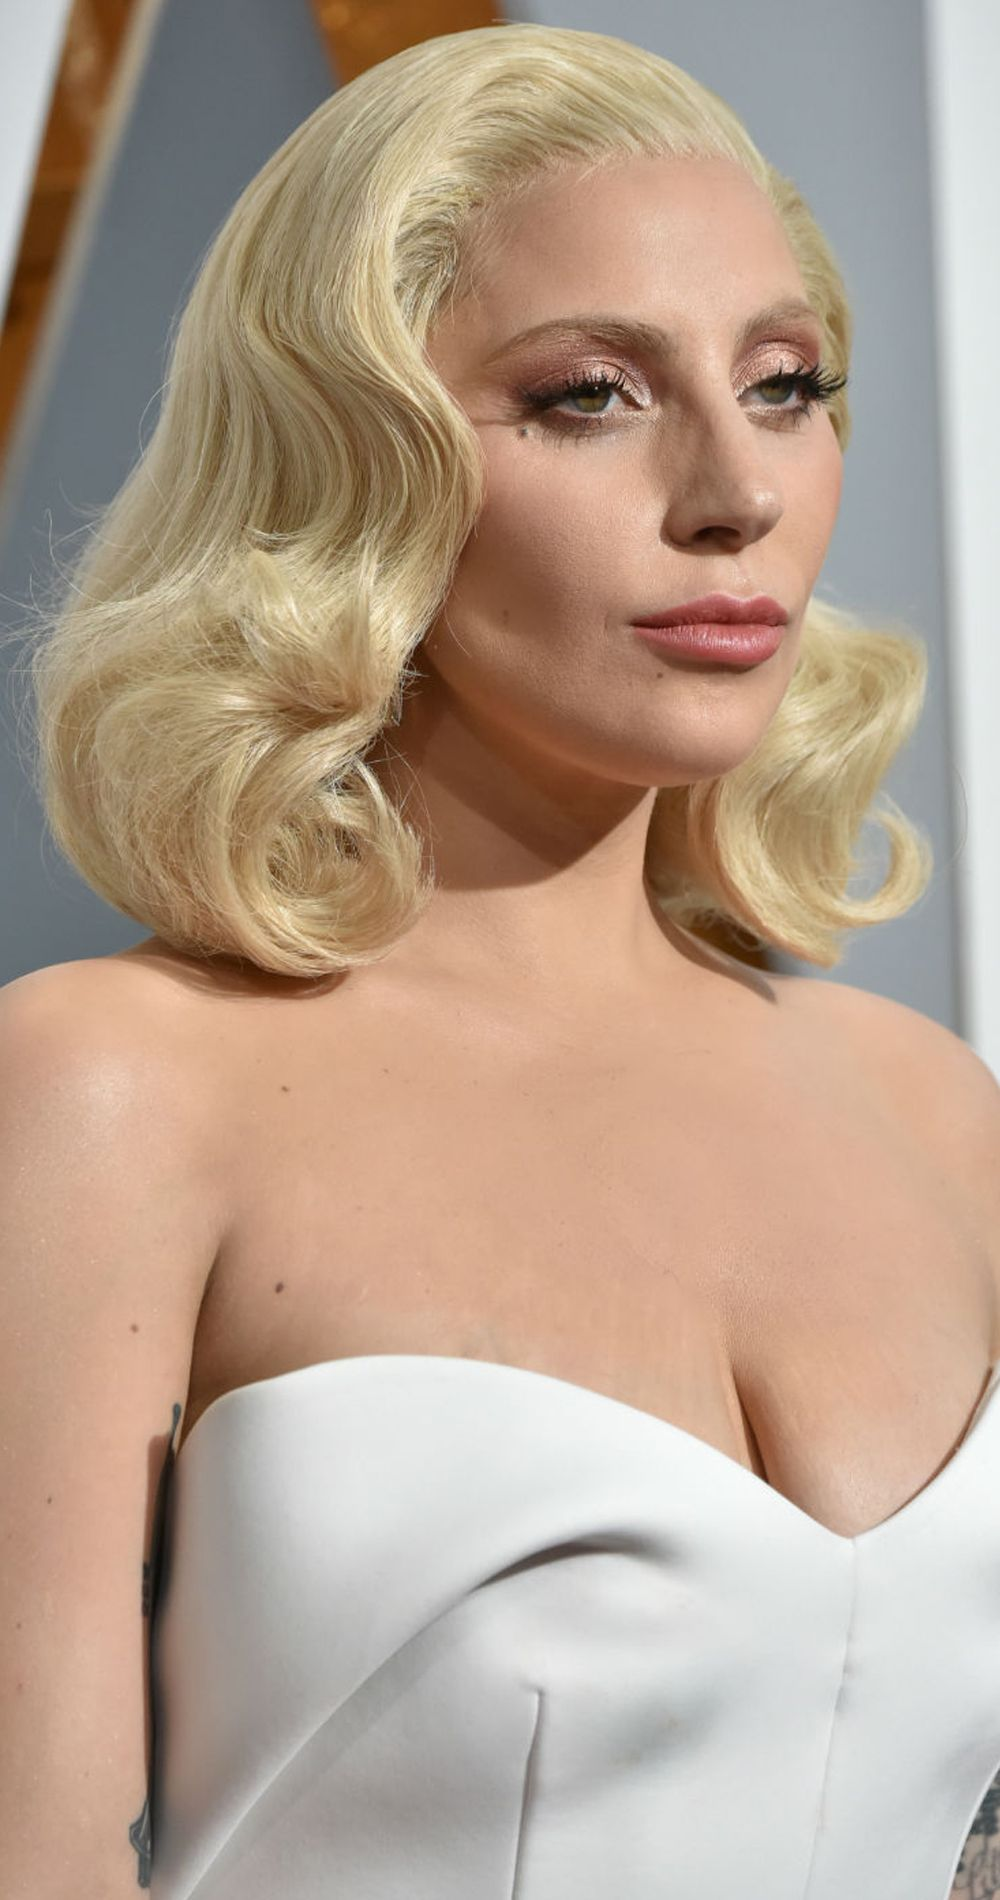 Oscars 2017: Best Hair And Beauty | Lady gaga dresses, Red ...